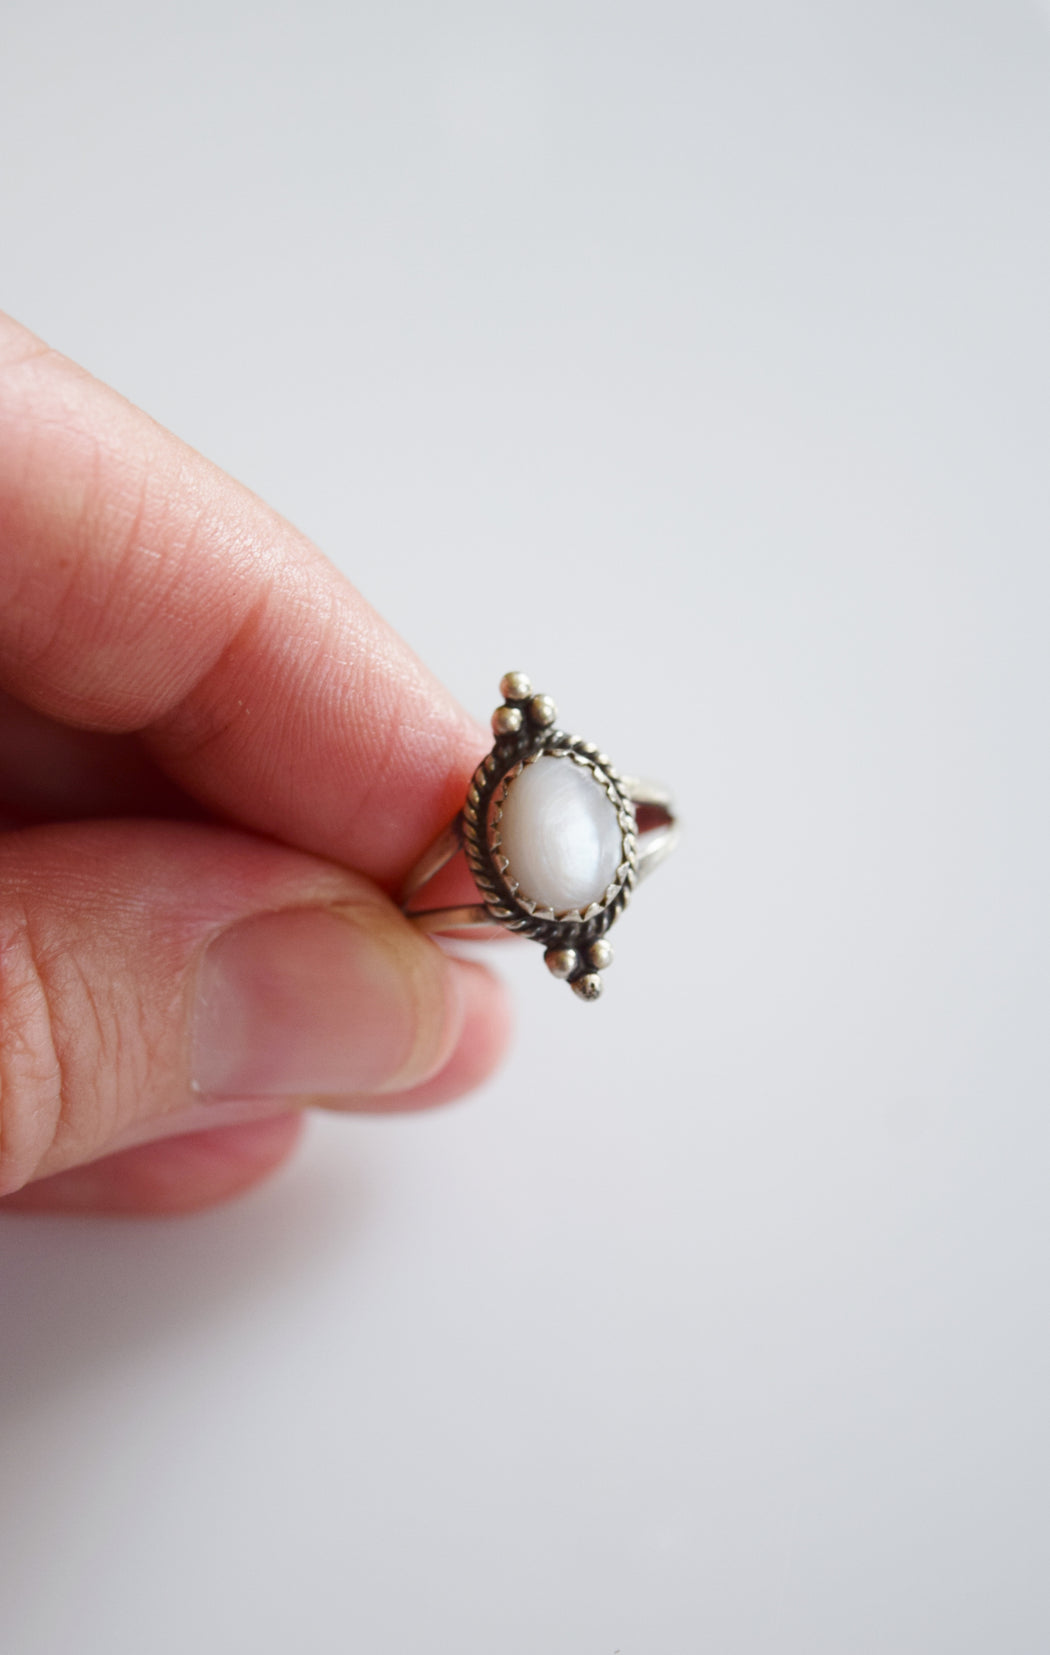 Vintage Sterling Silver + Mother of Pearl Ring